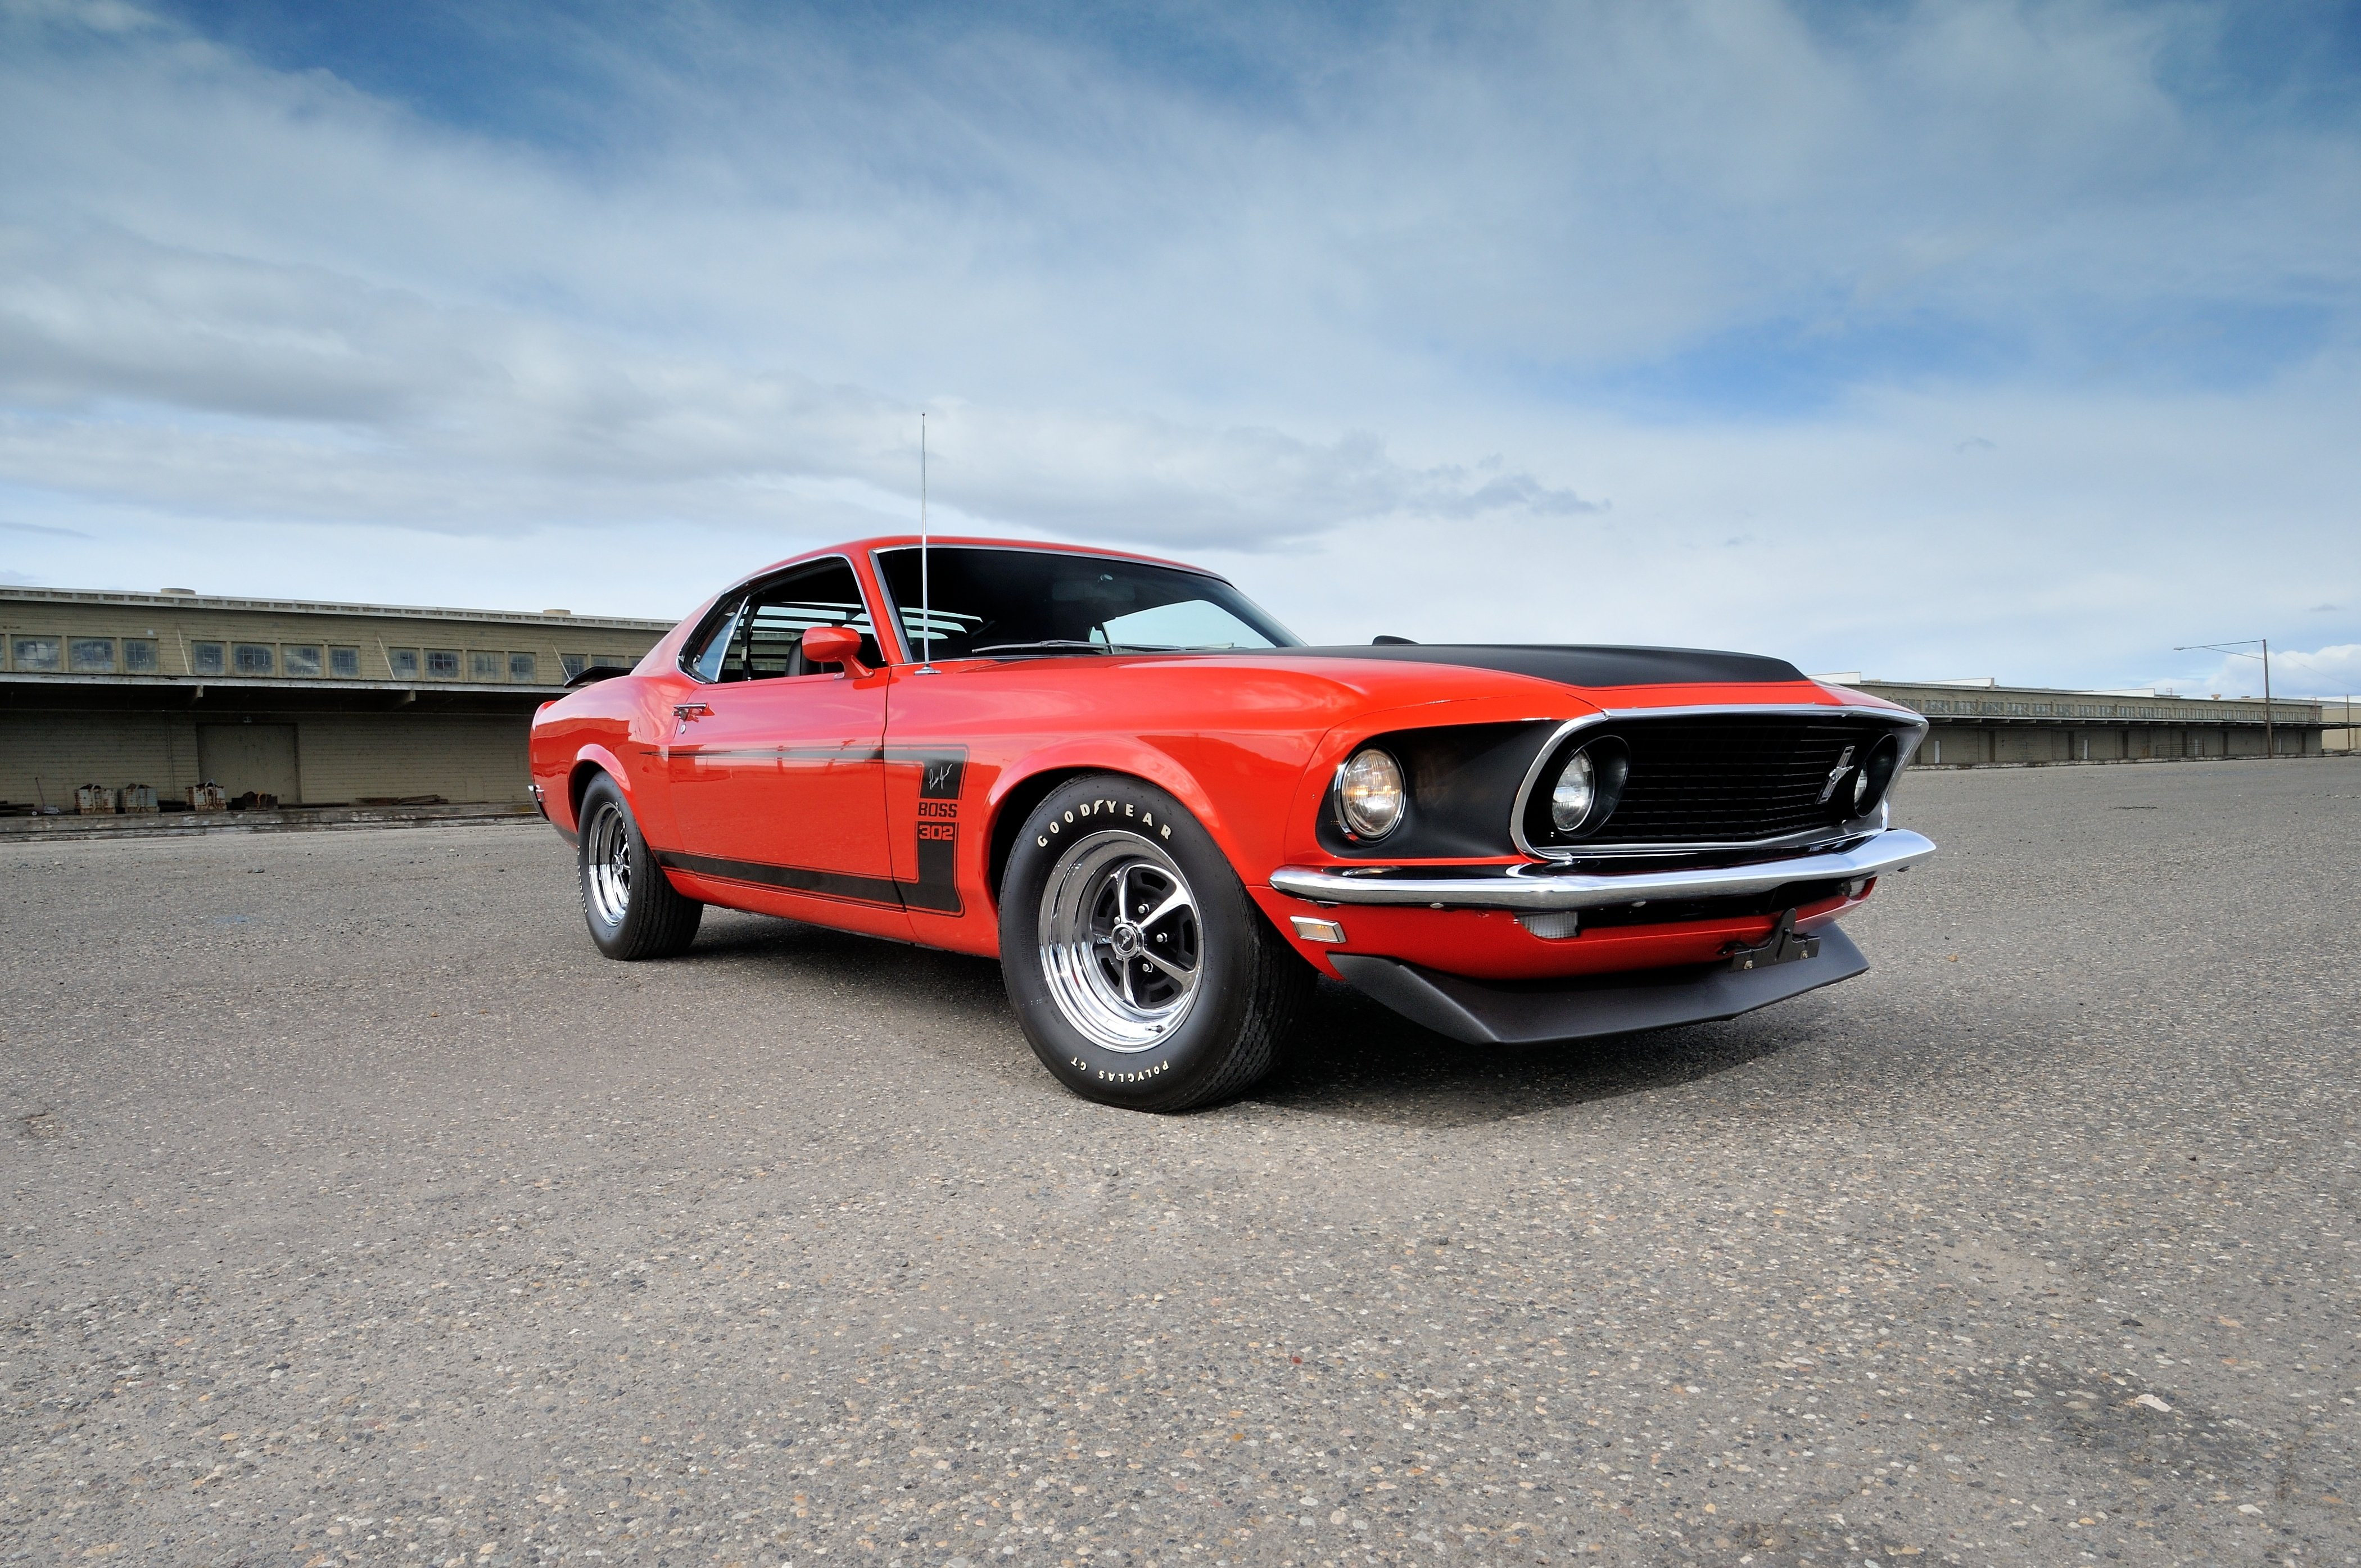 1969 ford mustang boss 302 fastback muscle classic usa 4200x2790 16 wallpaper 4200x2790. Black Bedroom Furniture Sets. Home Design Ideas